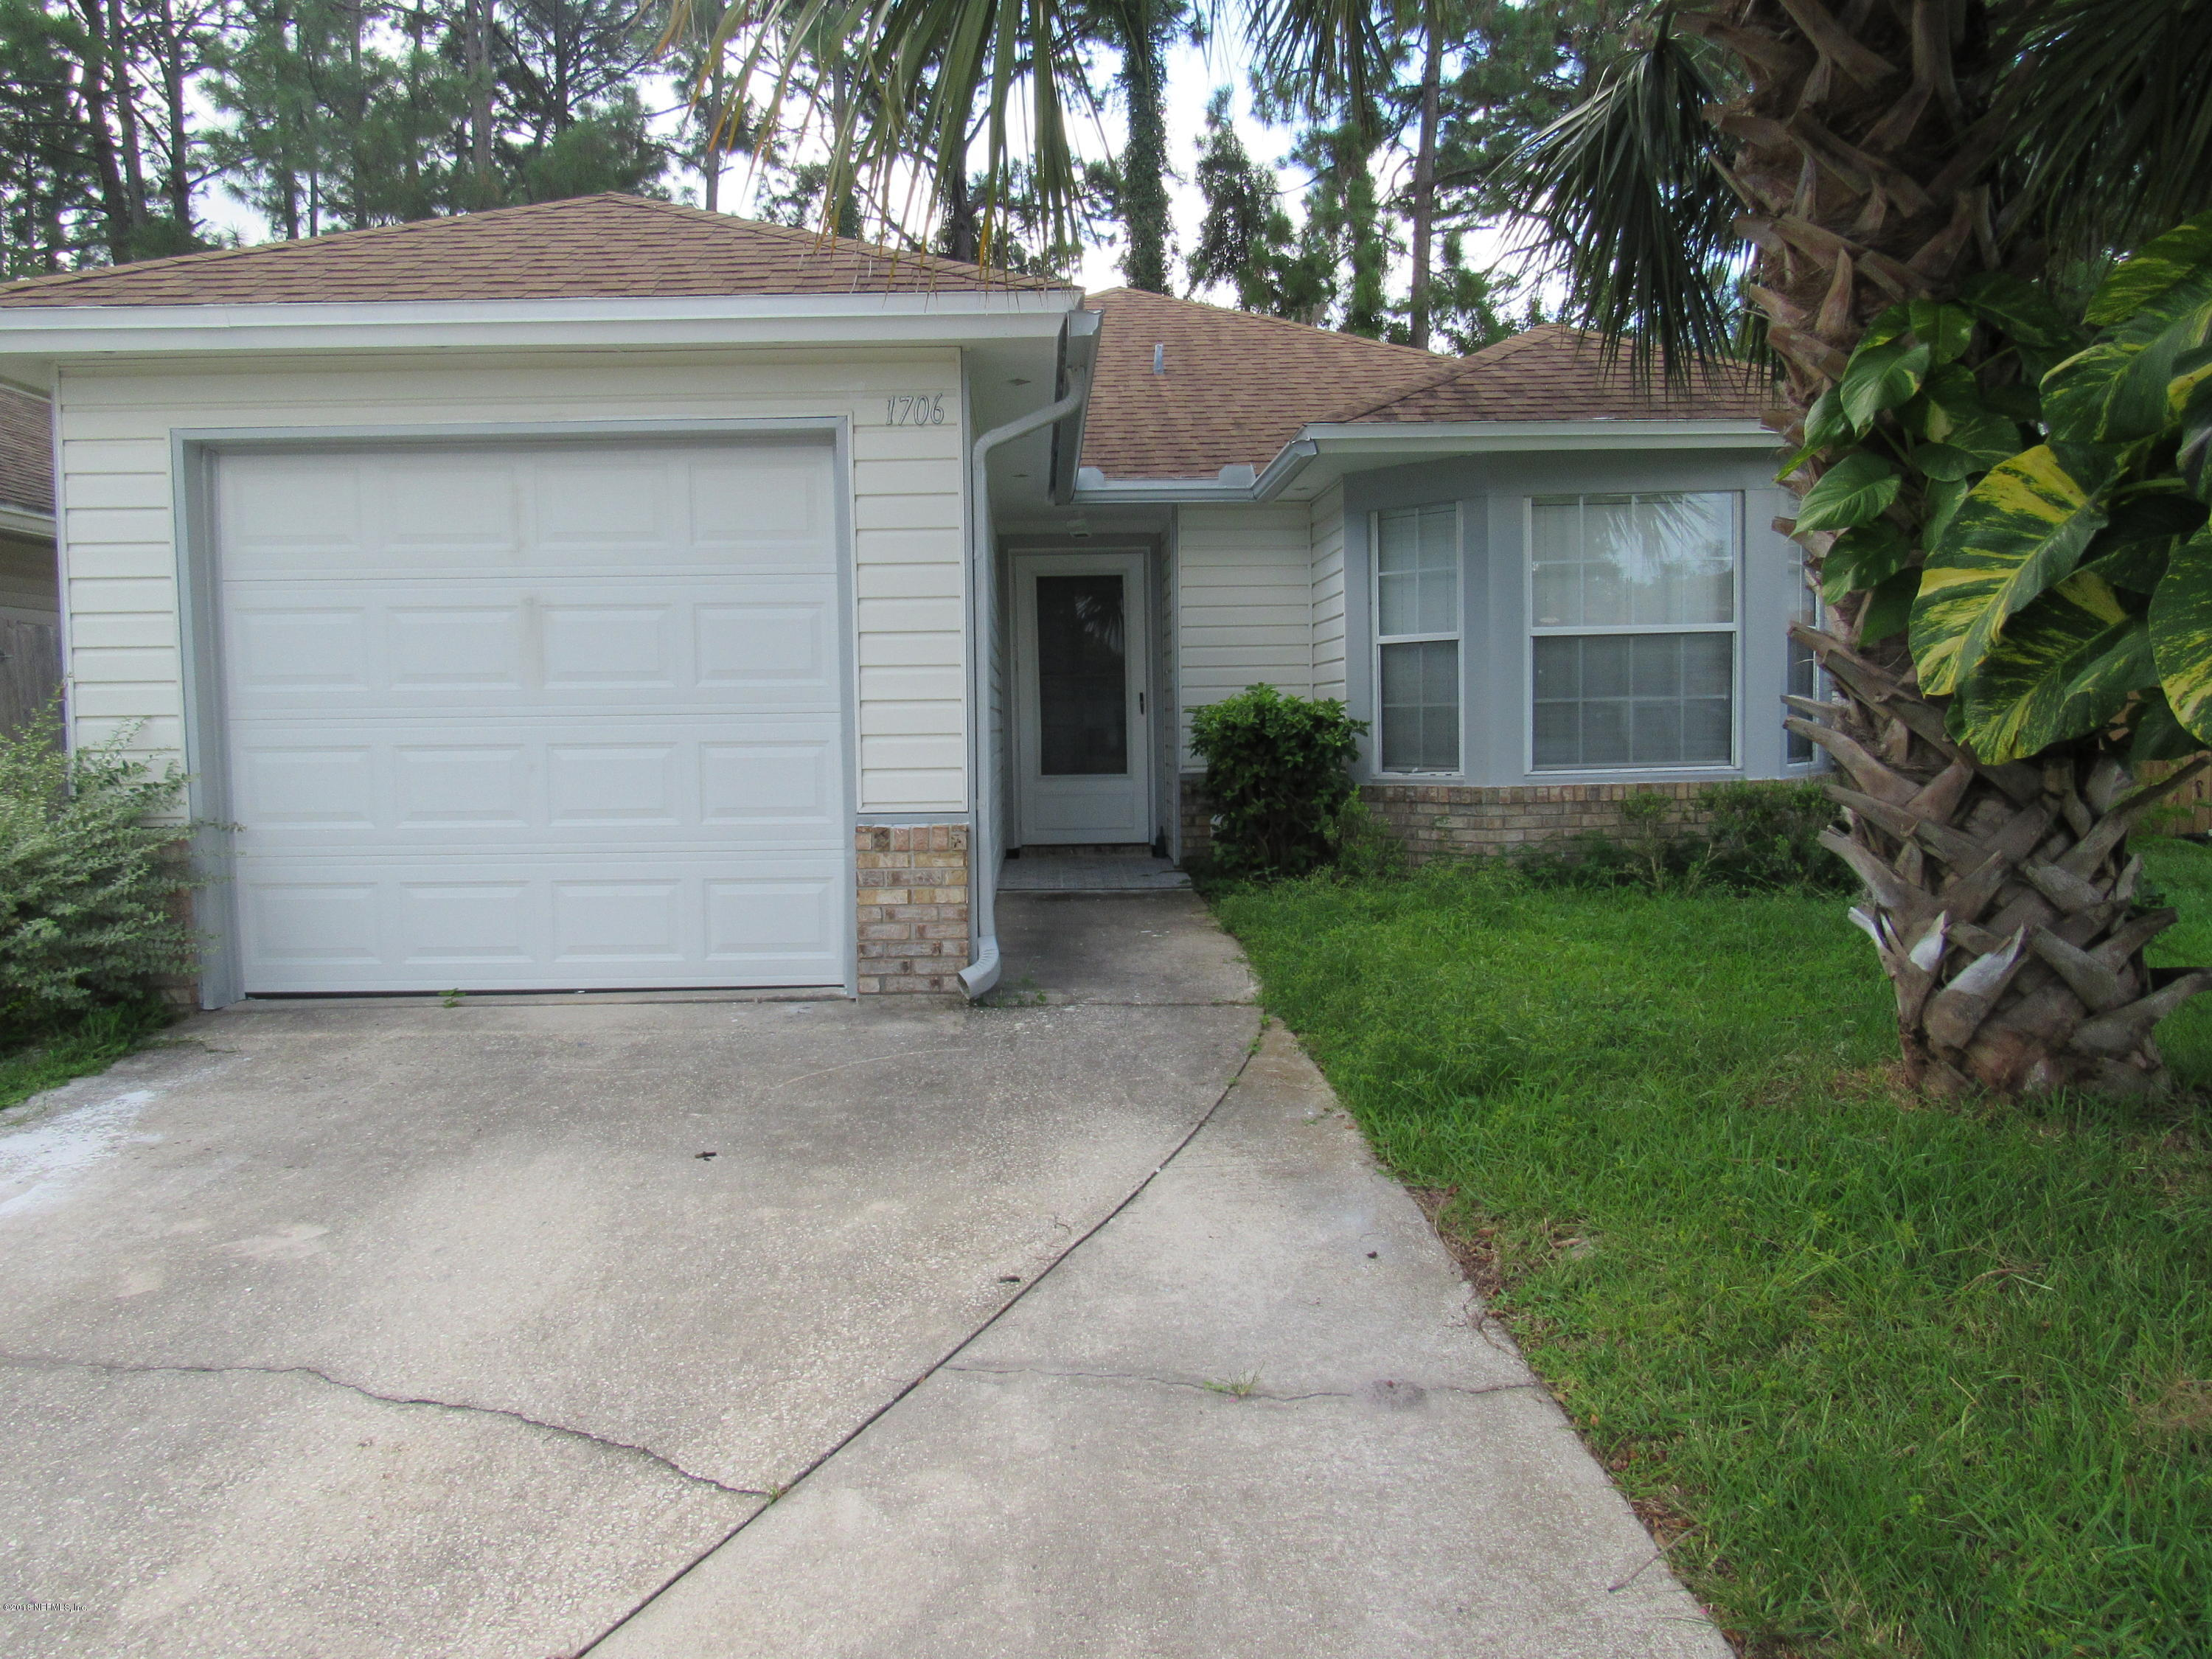 1706 ASHMORE GREEN, JACKSONVILLE, FLORIDA 32246, 3 Bedrooms Bedrooms, ,2 BathroomsBathrooms,Residential - single family,For sale,ASHMORE GREEN,956447